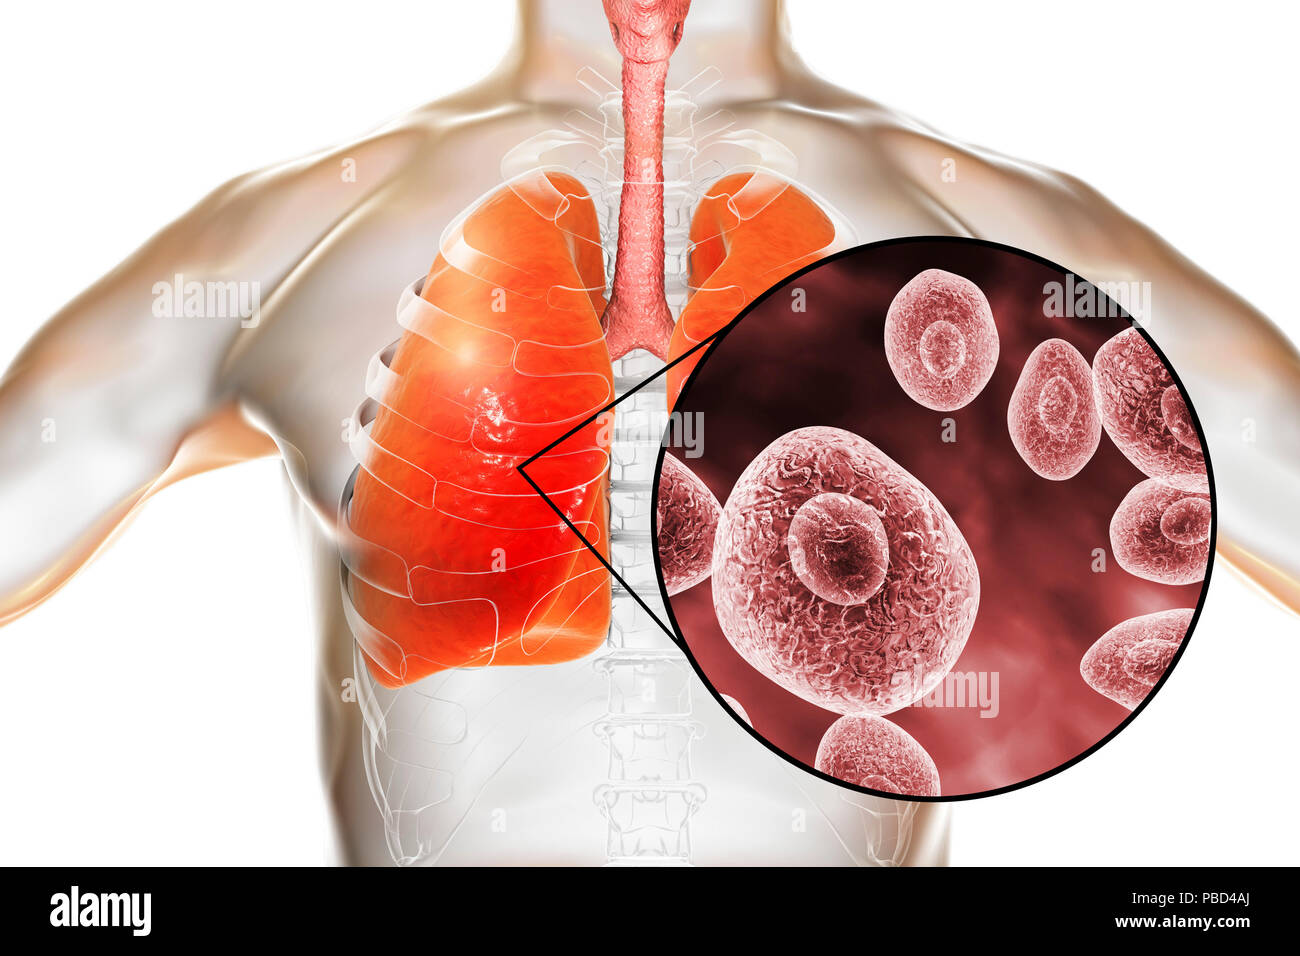 Pneumocystis pneumonia, conceptual computer illustration. This lung infection is the most common opportunistic illness in people infected with HIV (Human Immunodeficiency Virus) and is caused by the fungus Pneumocystis jaroveci (previously P. carinii). Treatment involves the use of antibiotics and bed rest. - Stock Image